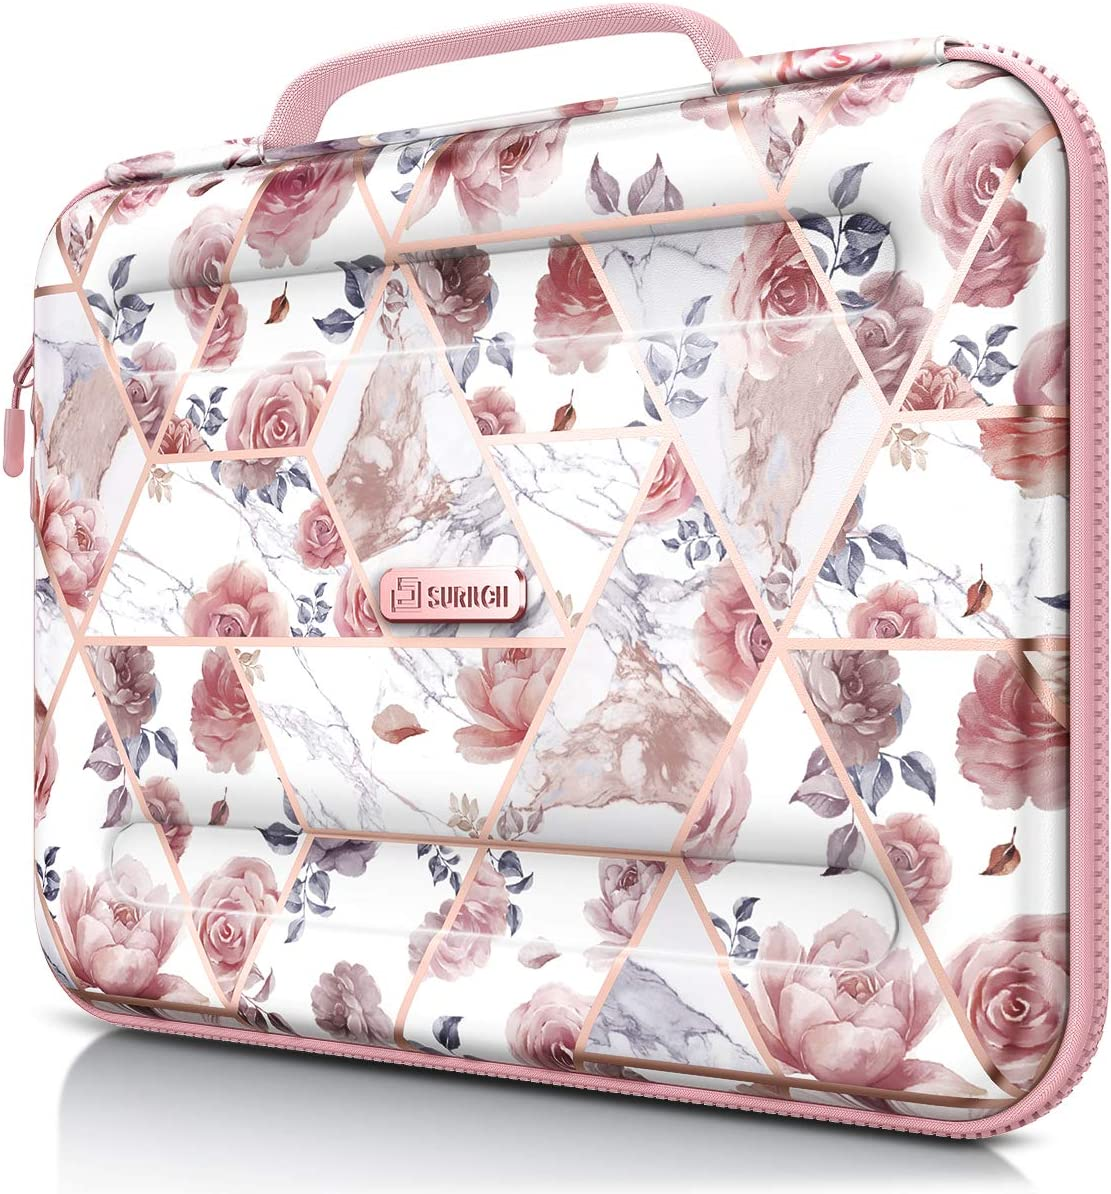 SURITCH Laptop Case, 13-13.3 Inch Laptop Sleeve Protective Bag, Pink Floral Slim Briefcase Waterproof Notebook Computer Carrying Case Cover Handbag for Women-Rose Marble